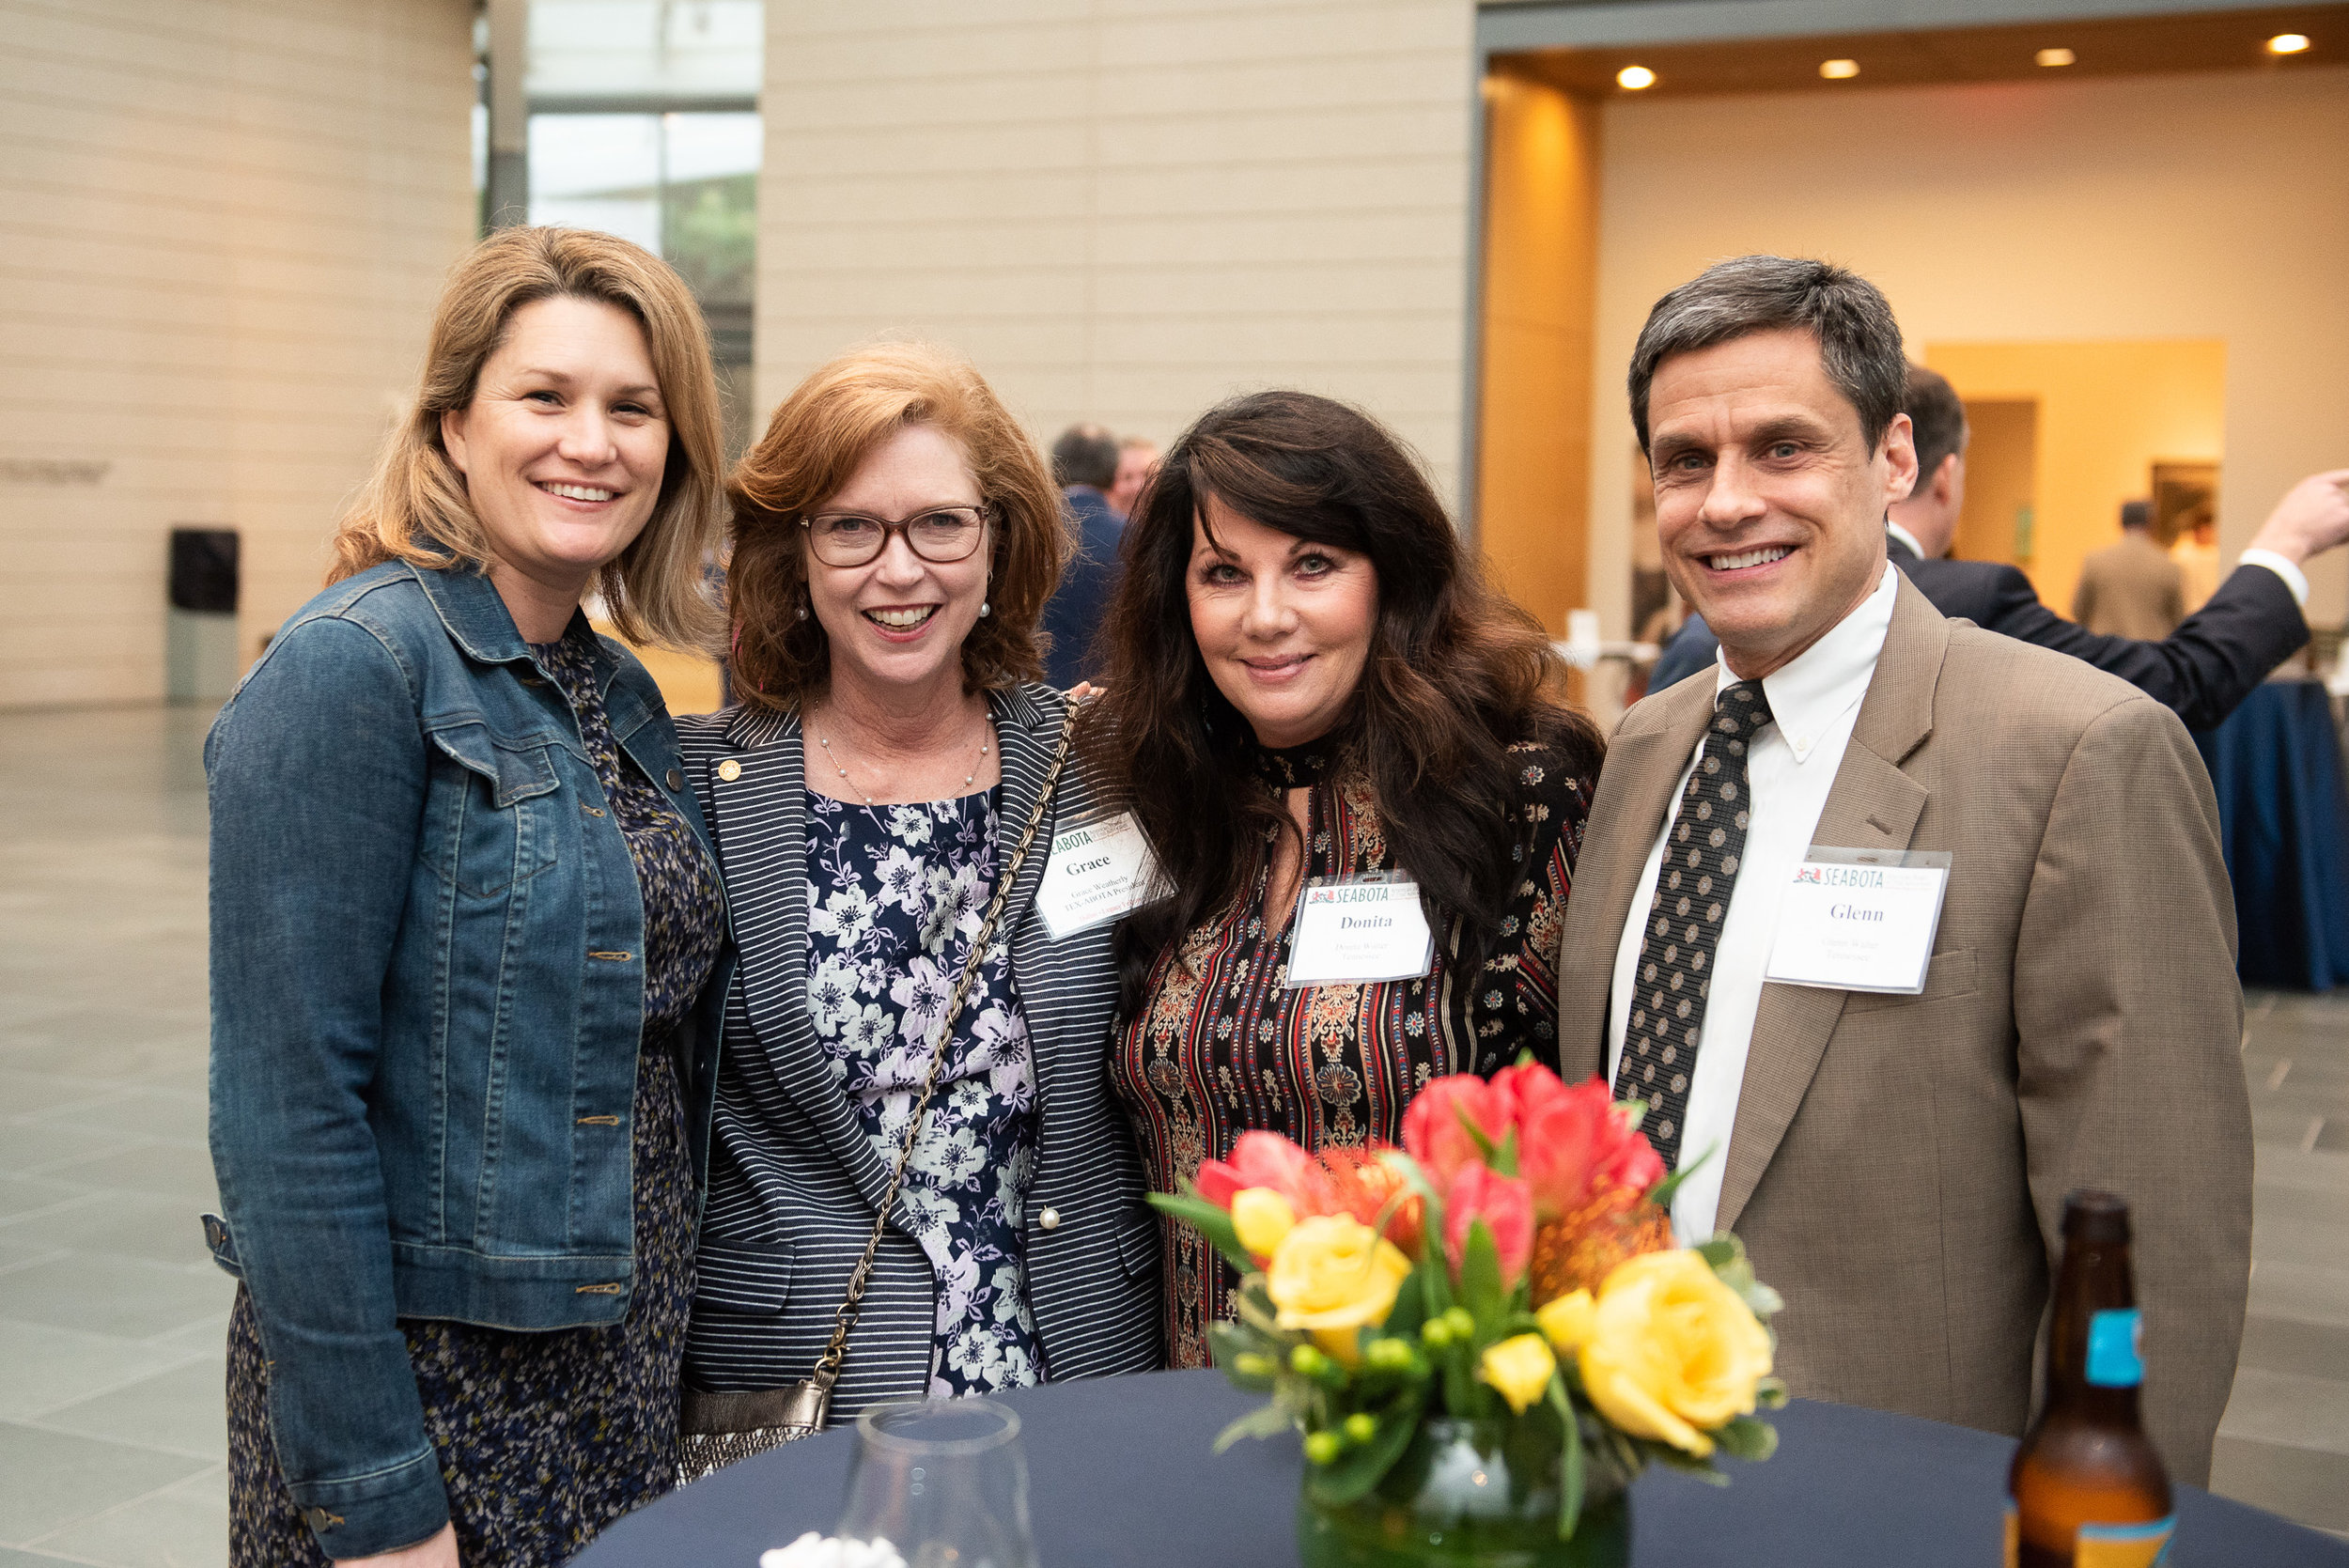 Corporate event photography in Durham, NC by Reese Moore Photography